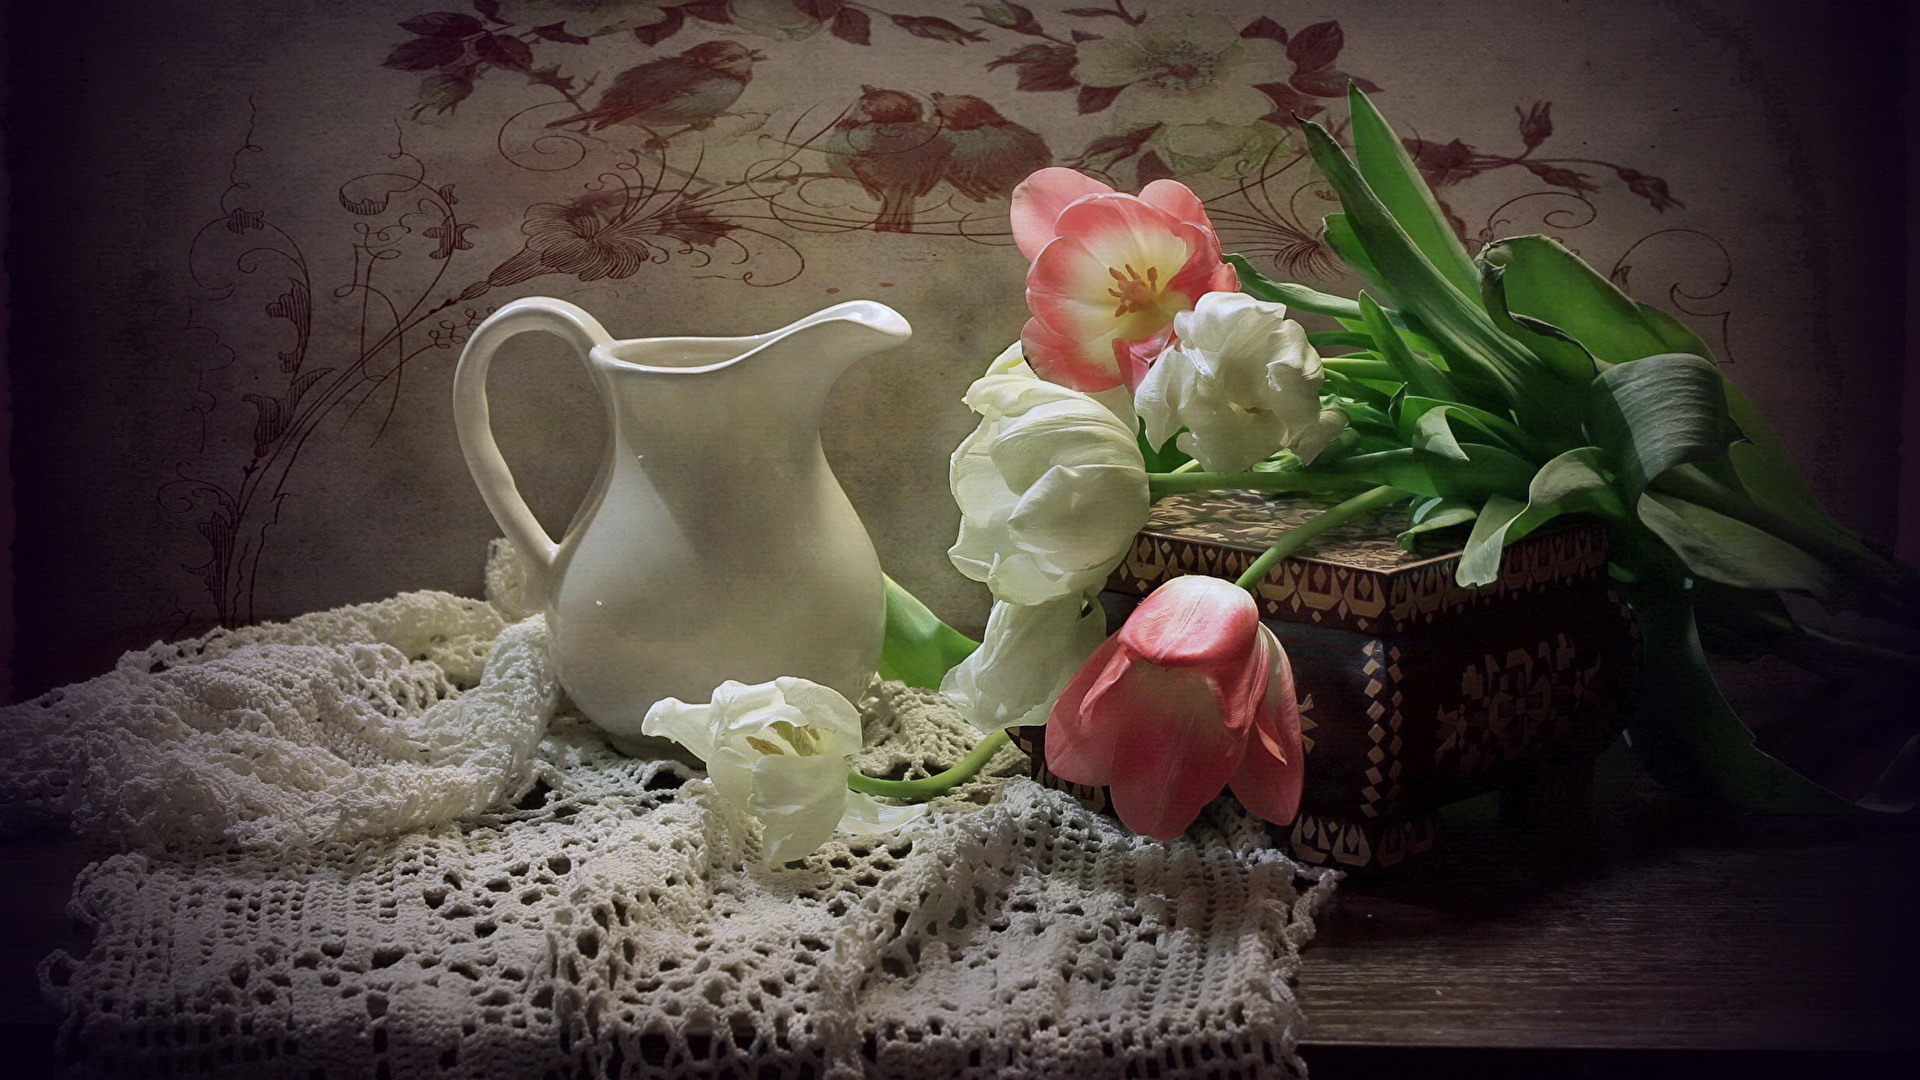 Images Tulips Flowers Pitcher Still Life 1920x1080